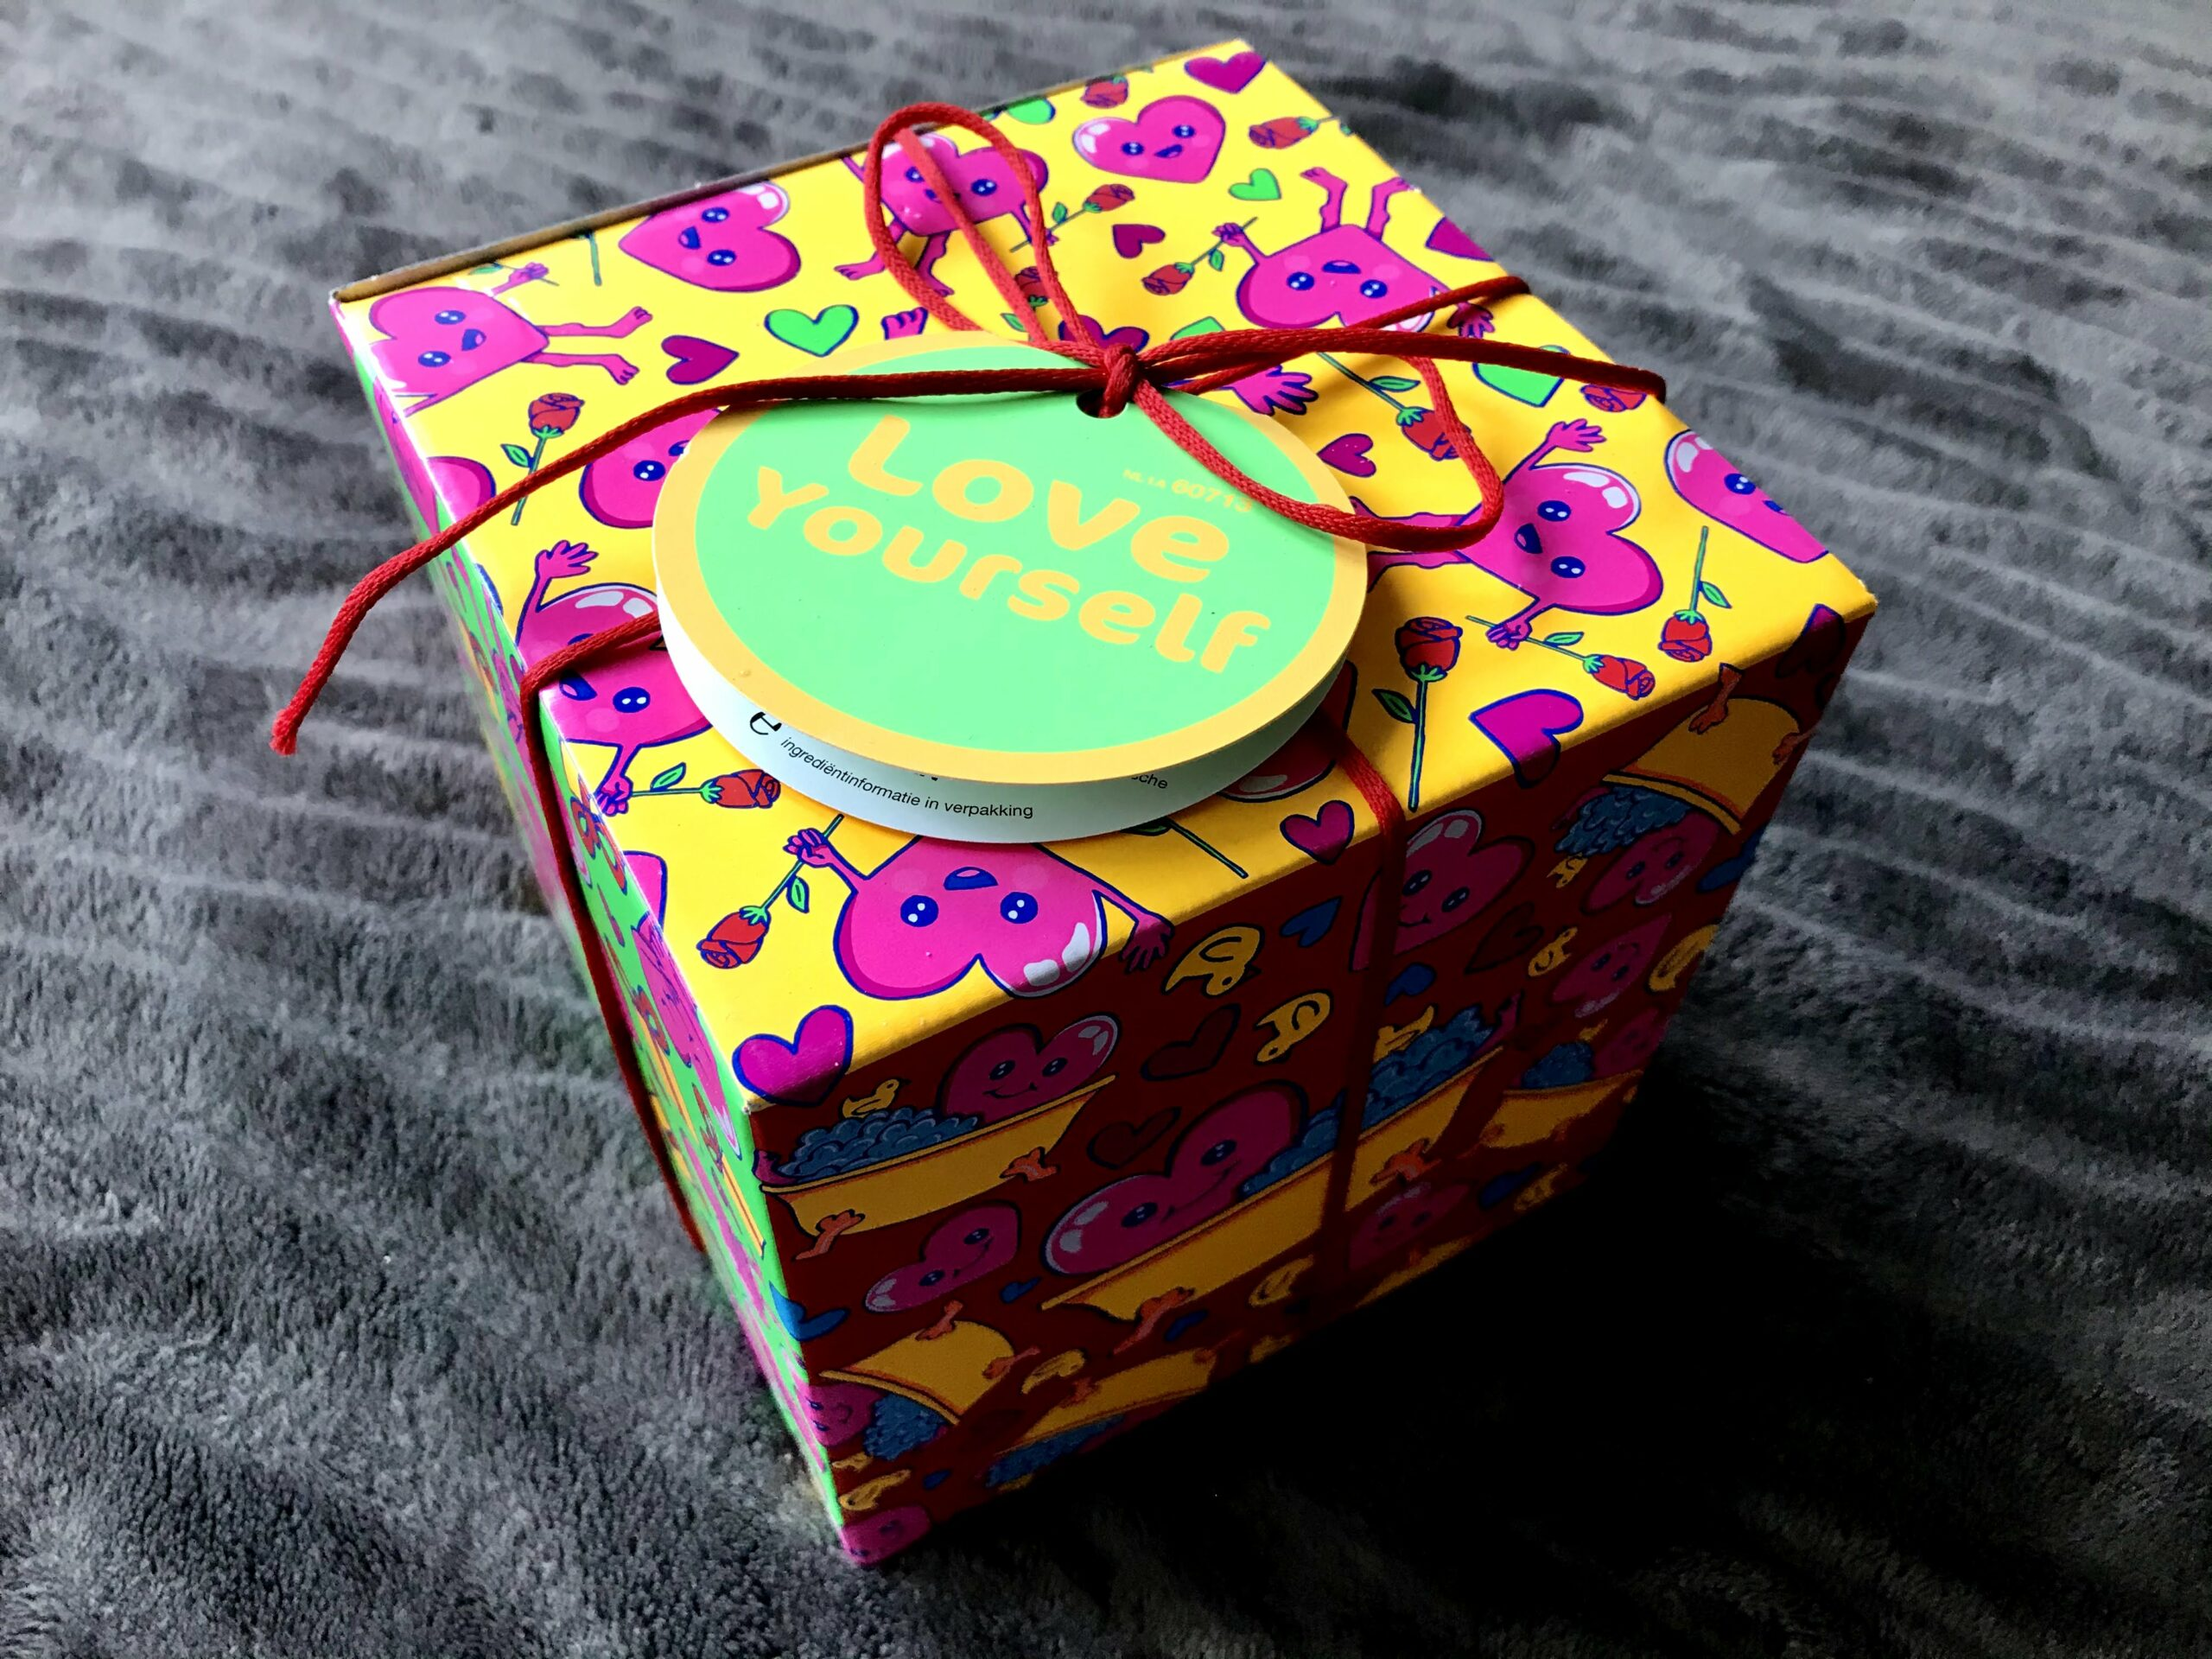 lush love yourself cadeau